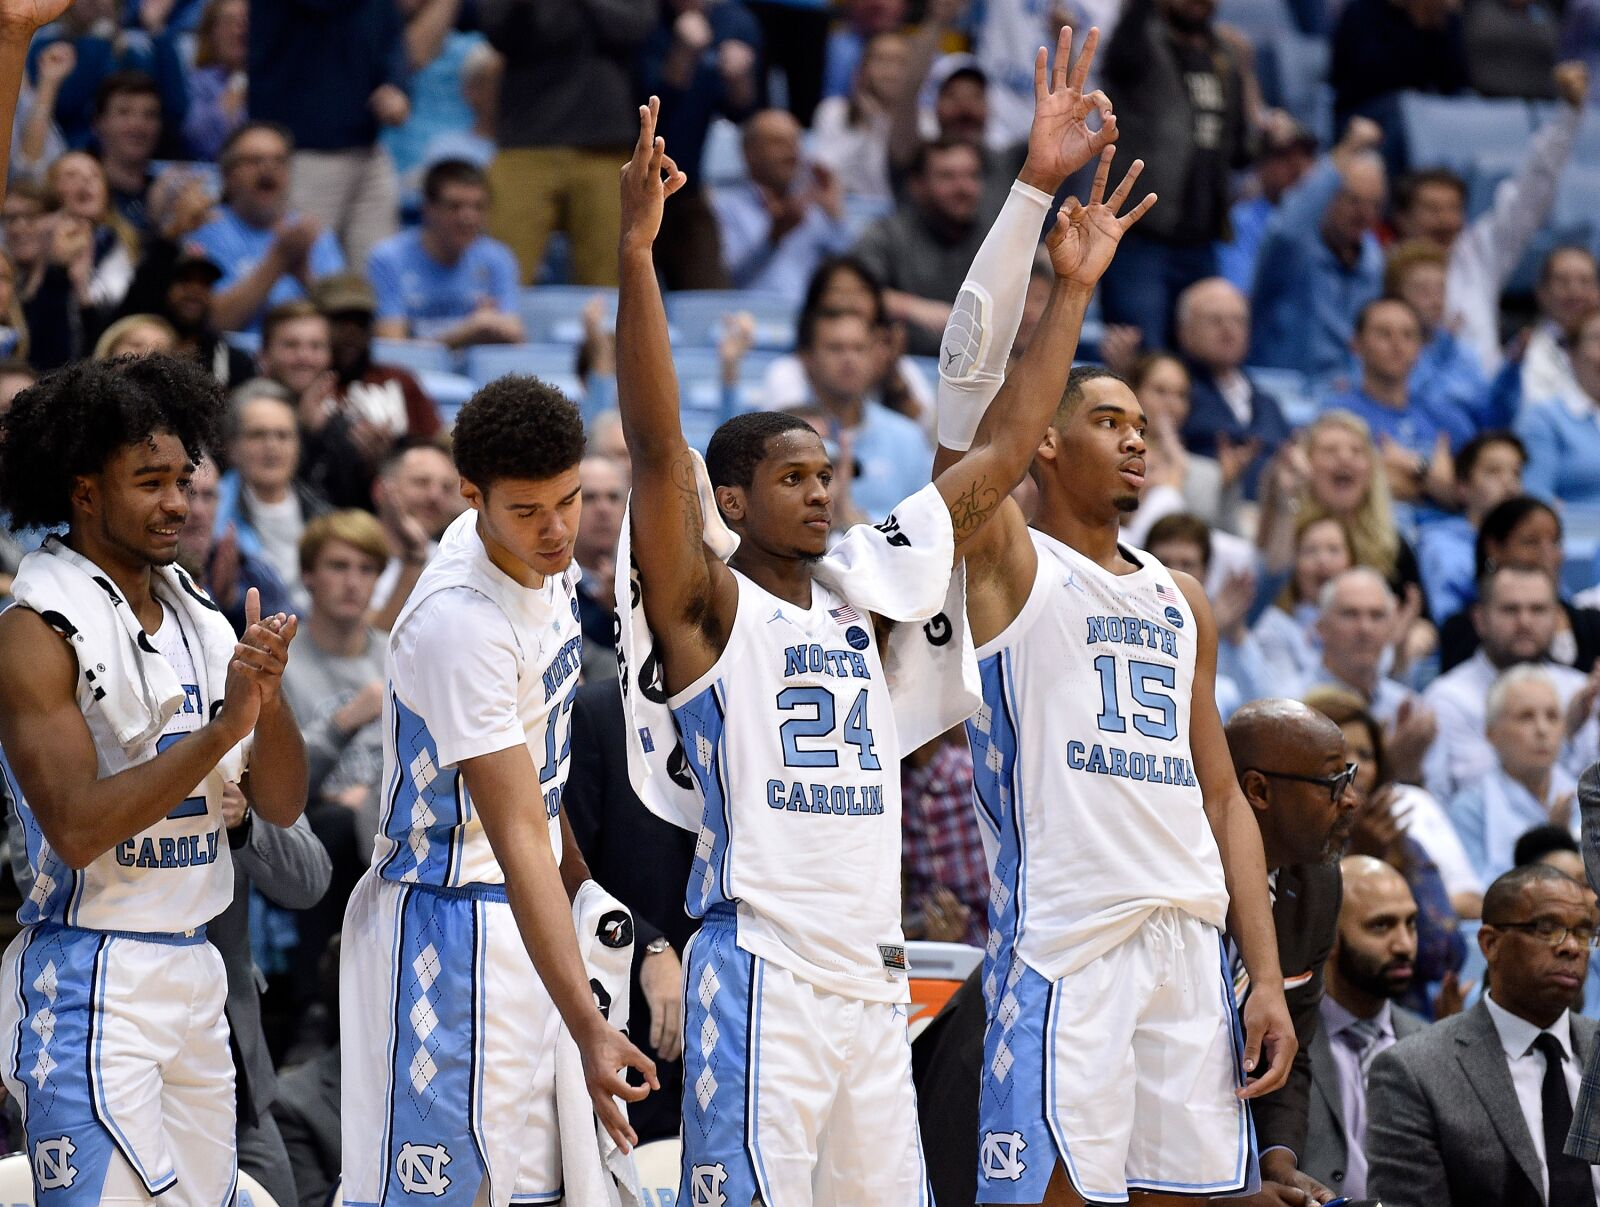 575a92c9be16 UNC Basketball  Tar Heels move to 5-0 after win over Saint Francis